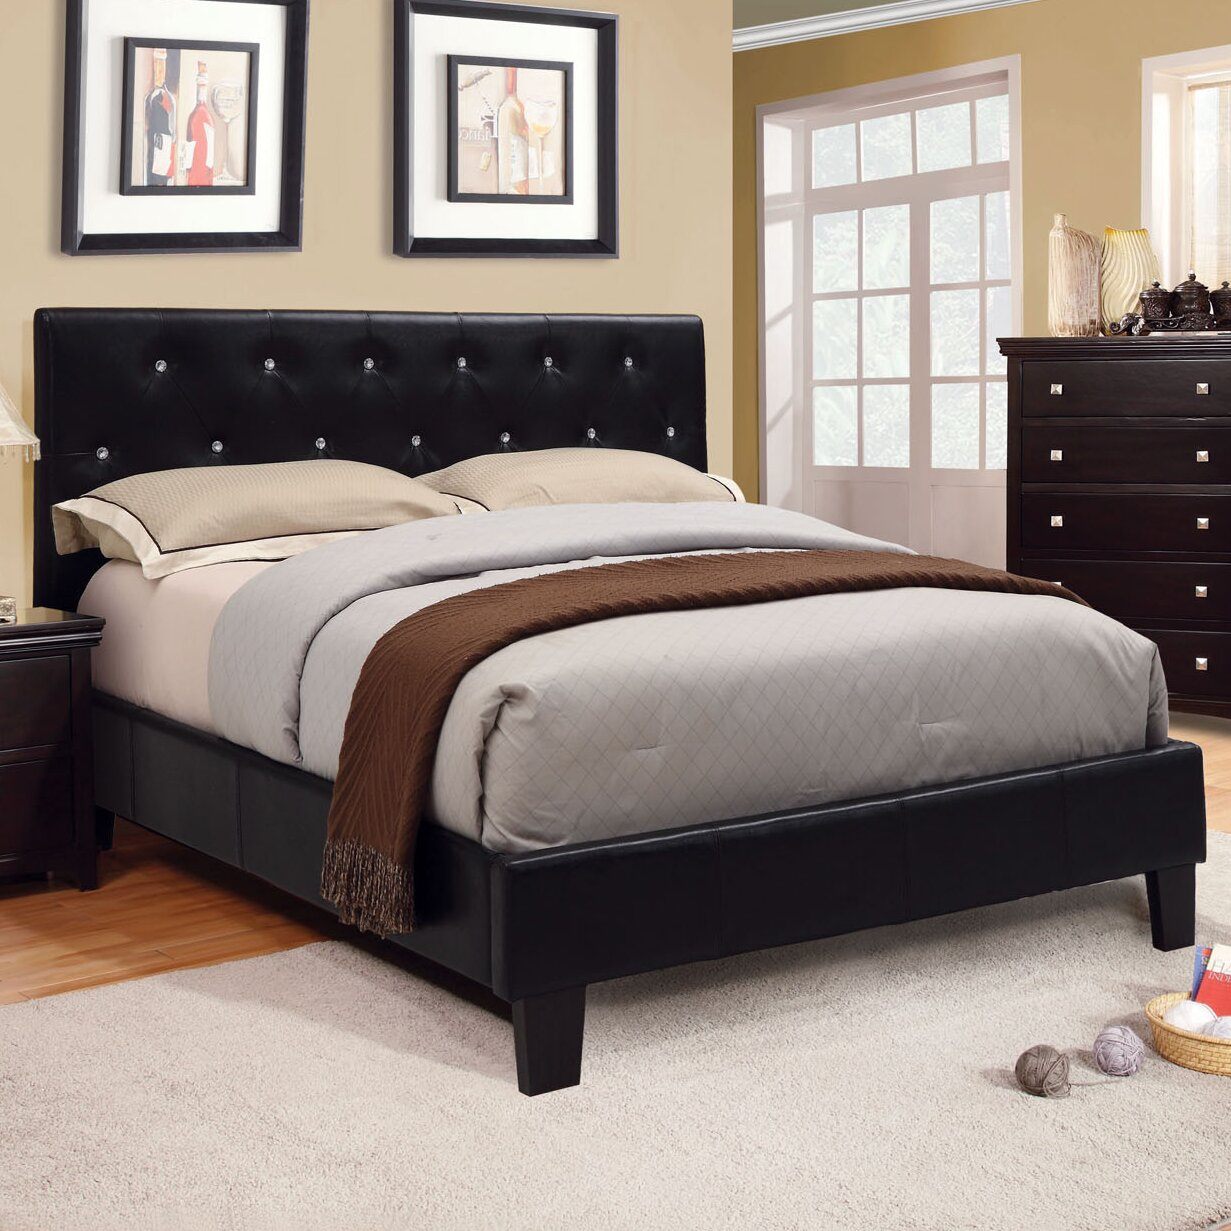 Hokku designs frazina upholstered platform bed reviews for Pedestal bed